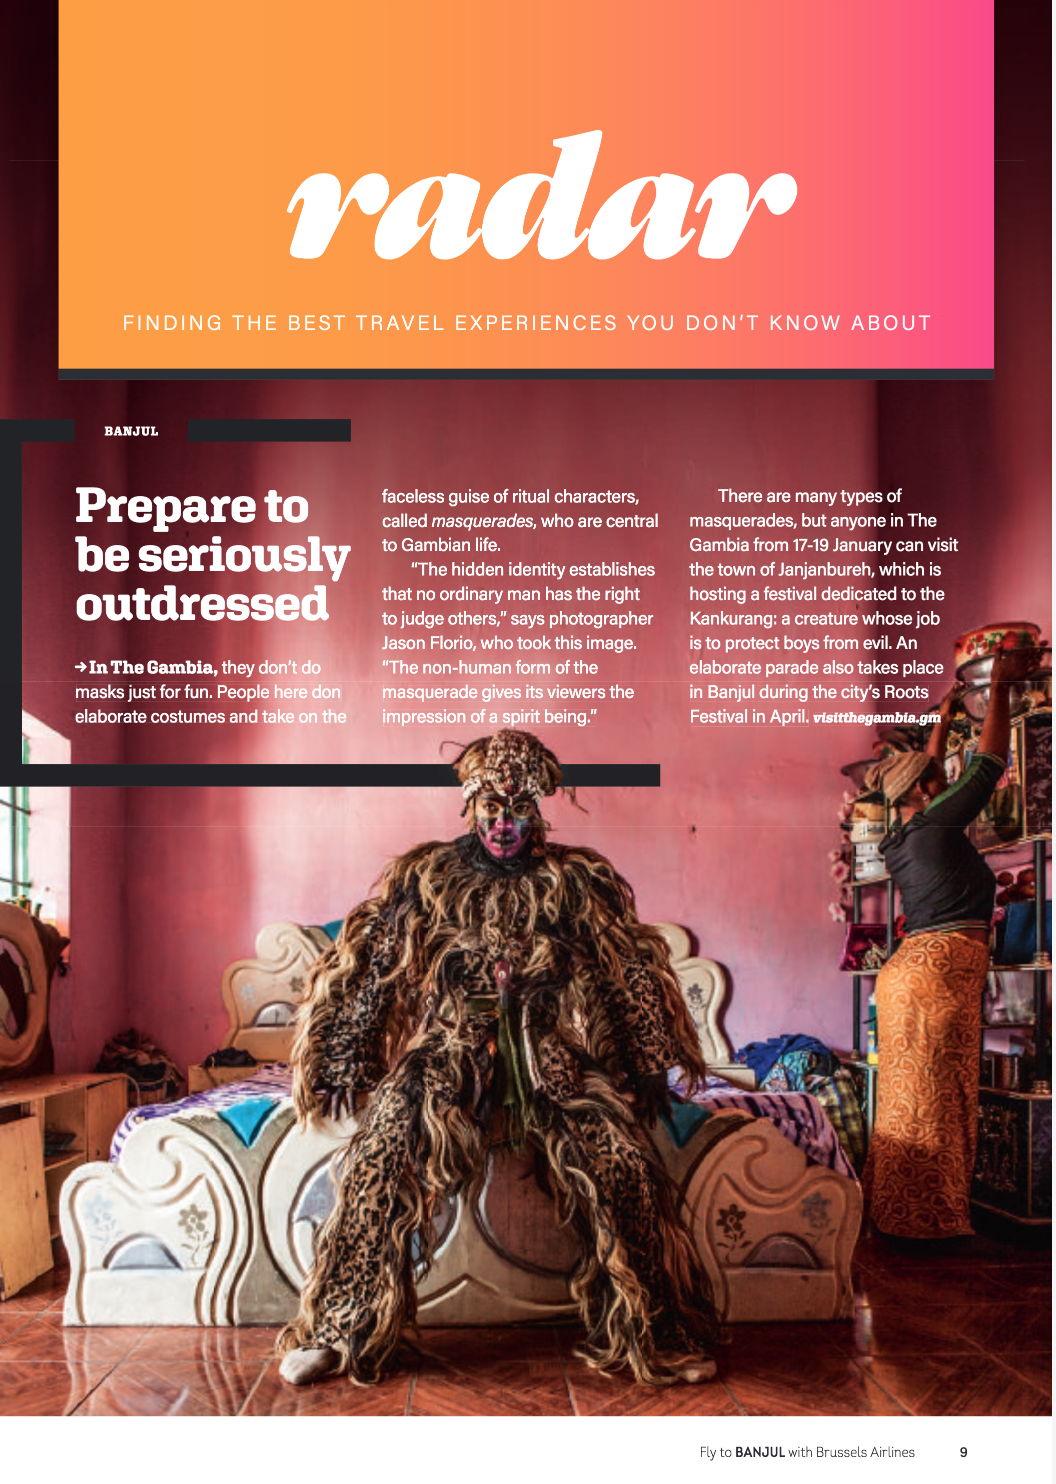 Media - The Zimba Masquerade, the Gambia, West Africa © Jason Florio for Brussels Airlines inflight magazine